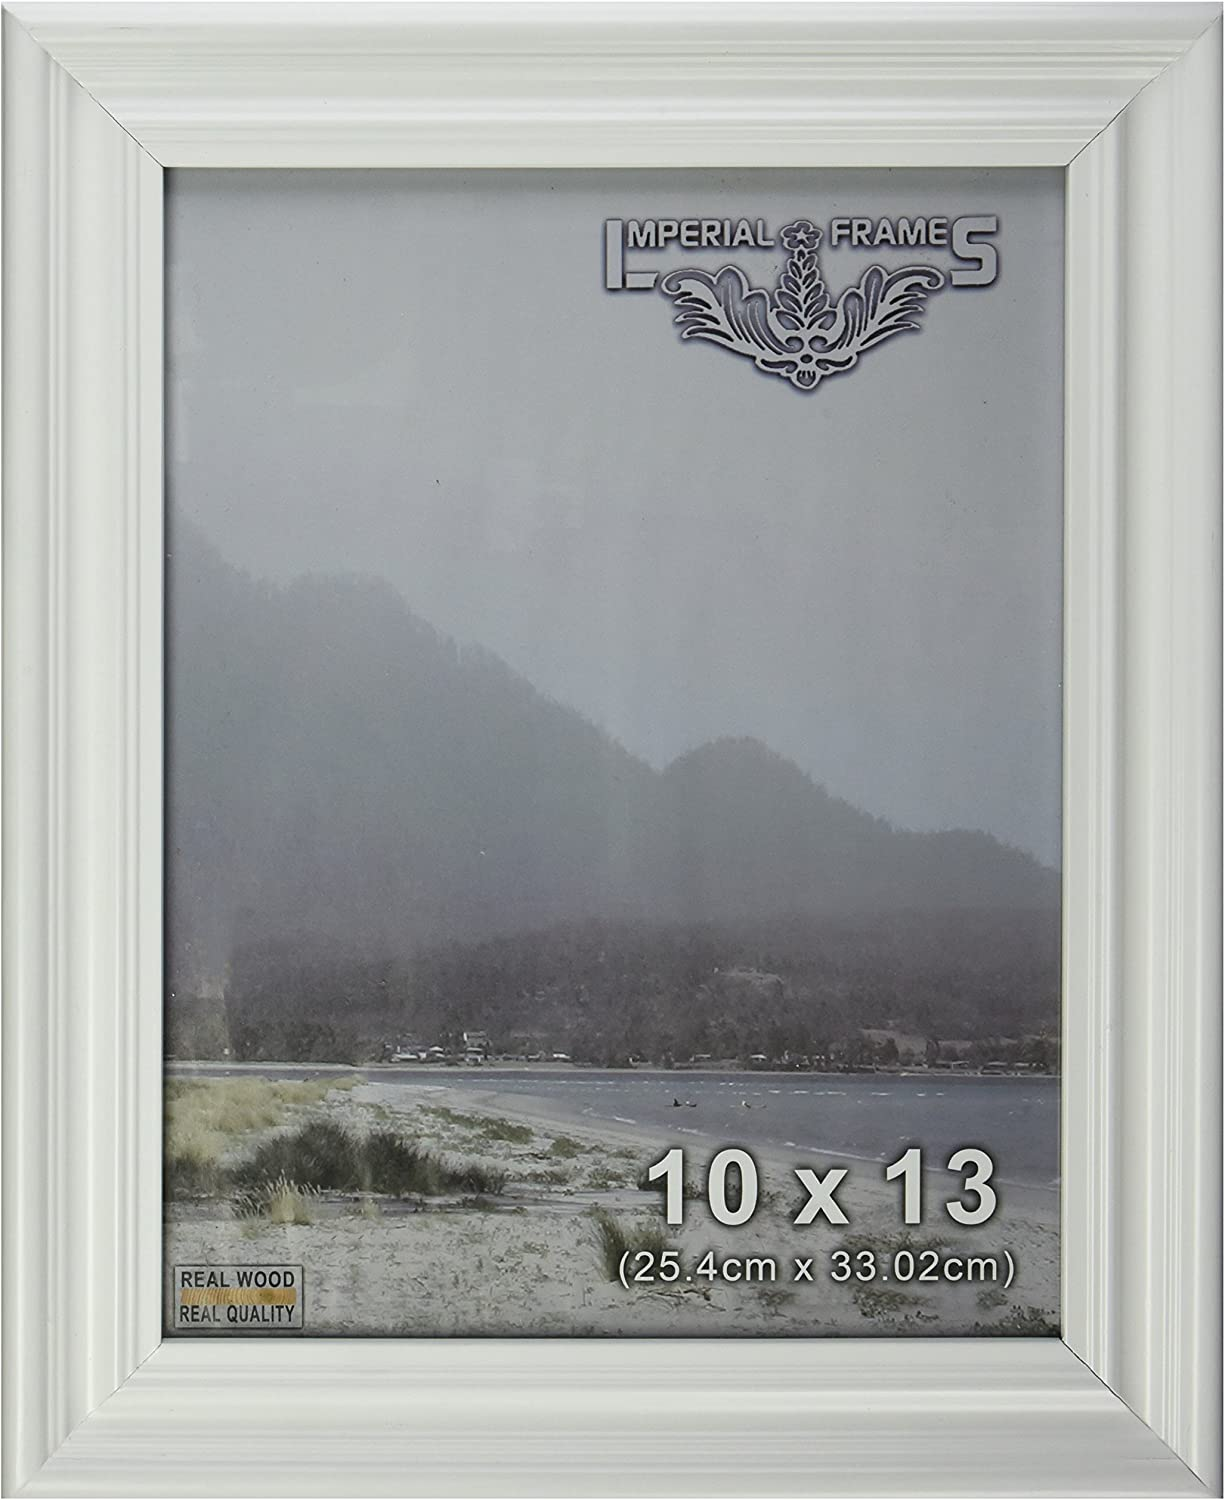 MyFrameStore Imperial Frames Gold Colored Textured Double Mattboard